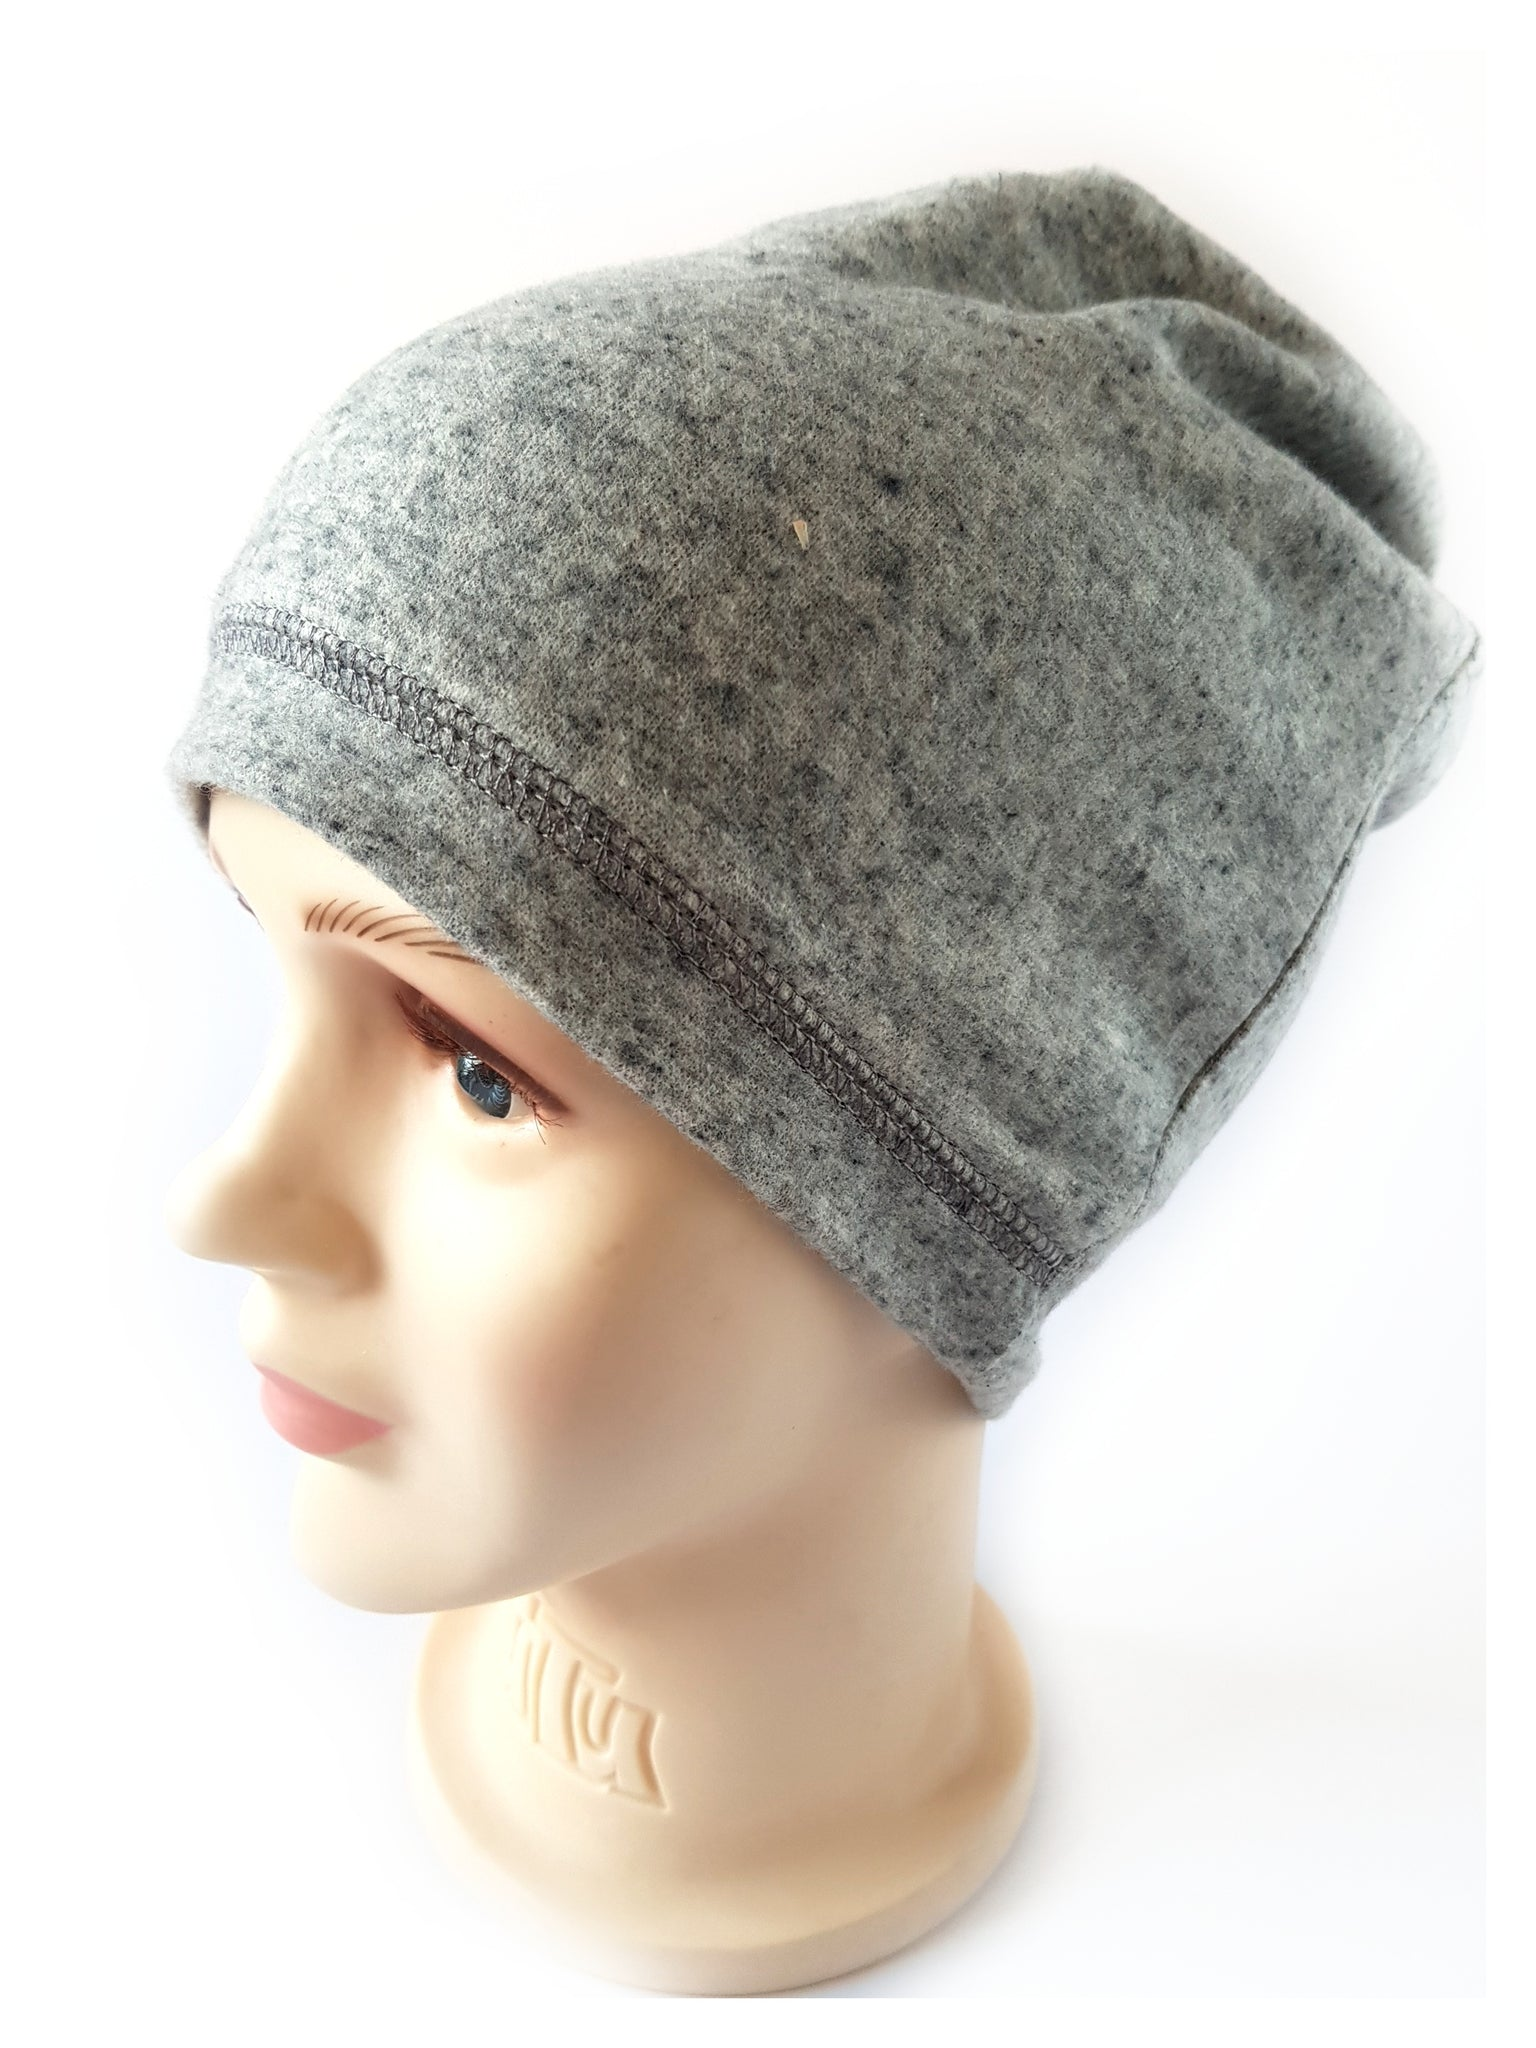 Beanie Warm Hat plain grey 1-15 years